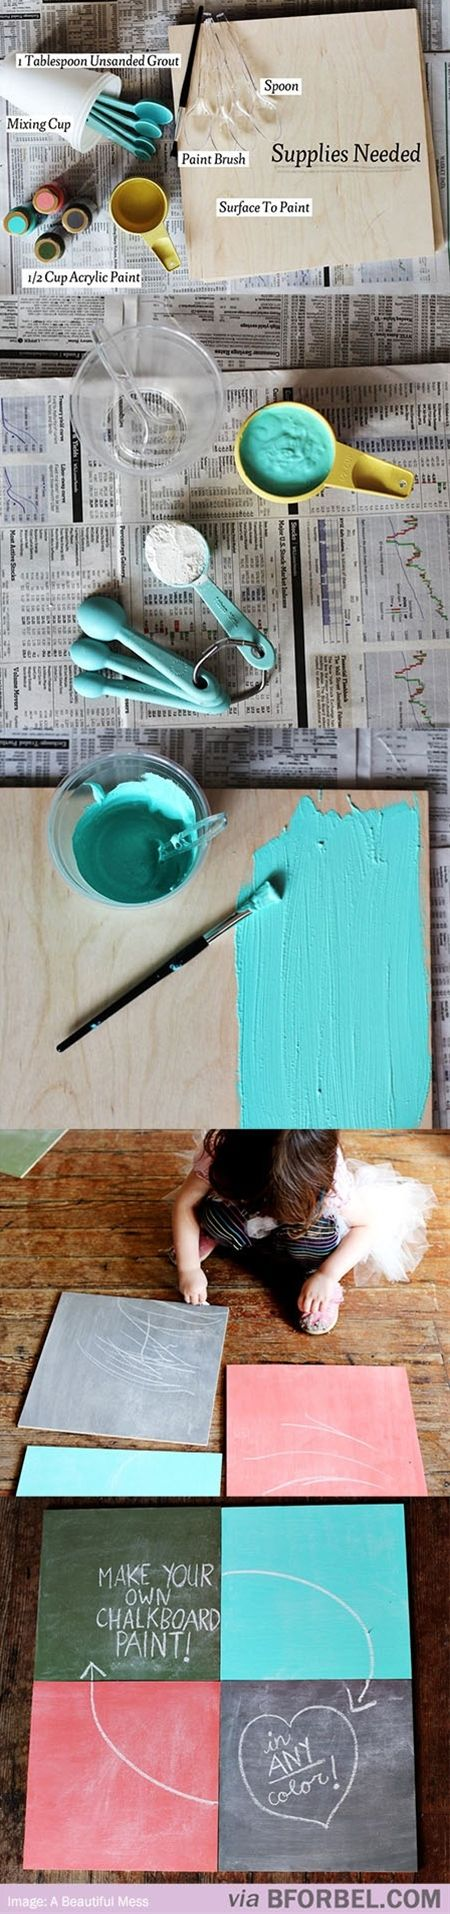 color-chalkboard-paint